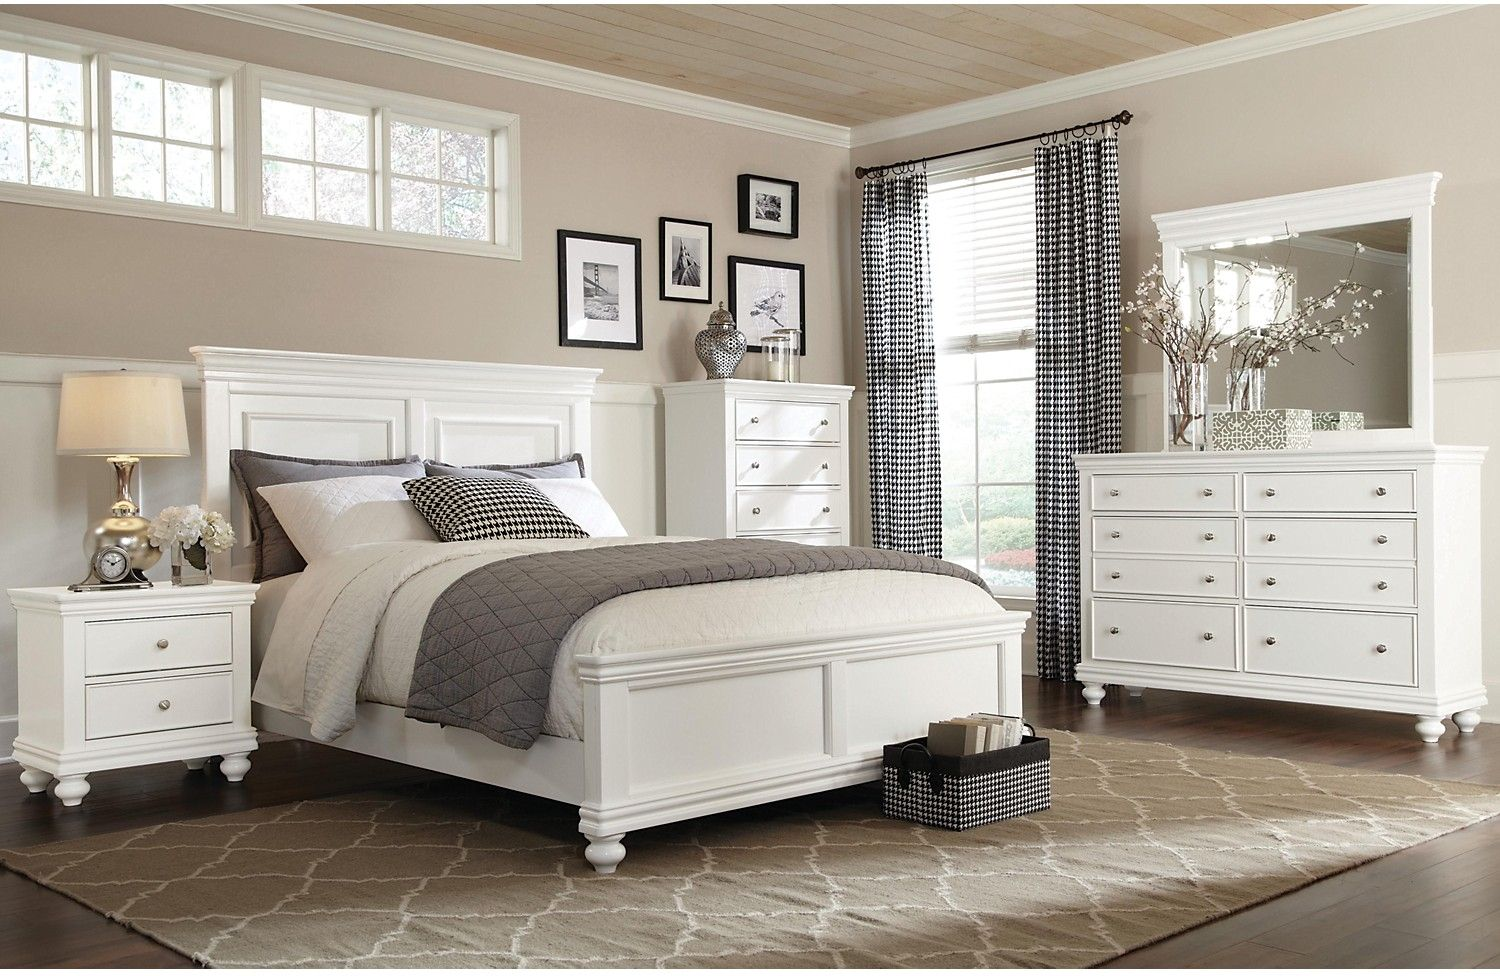 Bedroom Furniture   Bridgeport 6 Piece Queen Bedroom Set   White. Bridgeport 6 Piece Queen Bedroom Set   White   Queen bedroom sets